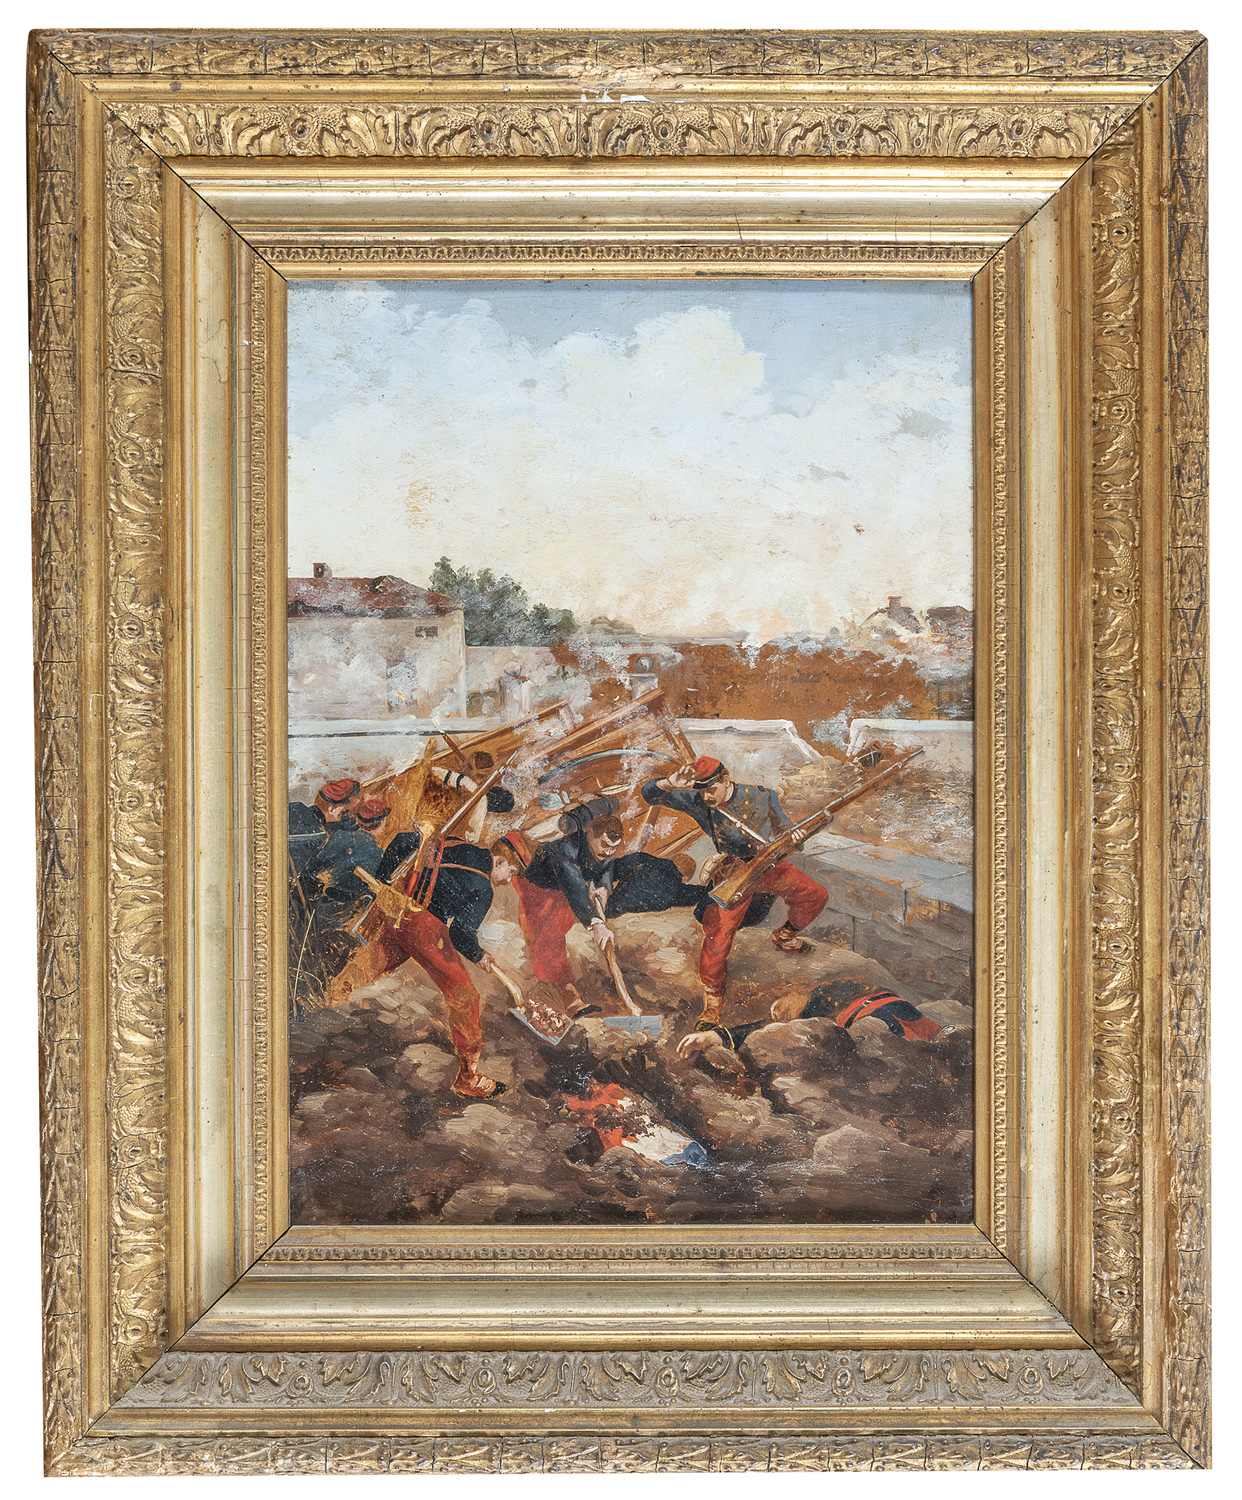 PAIR OF OIL PAINTINGS BY RAOULVERNEUIL ? 19TH-20TH CENTURY - Image 2 of 2